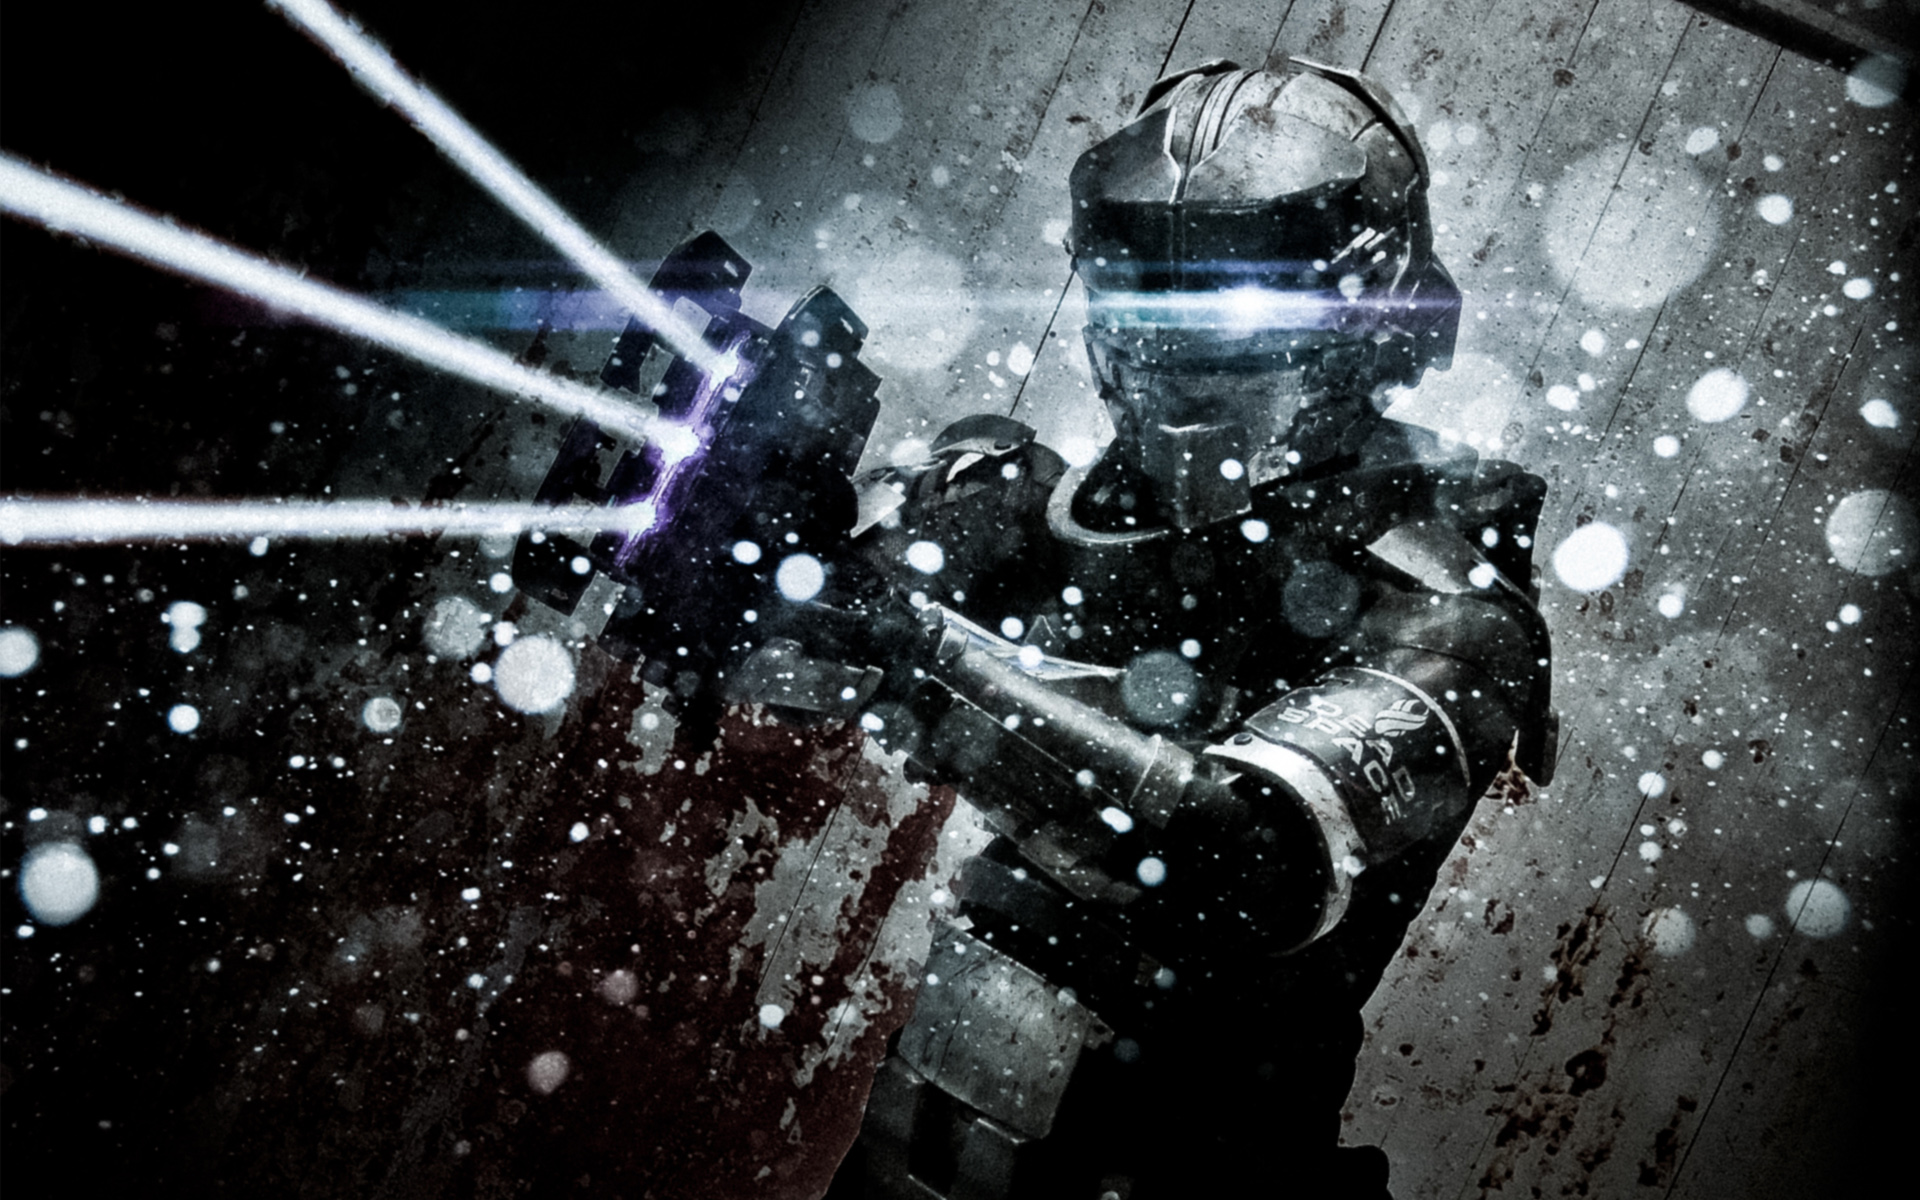 Amazing Dead Space 3 Wallpaper - HD Desktop Wallpapers